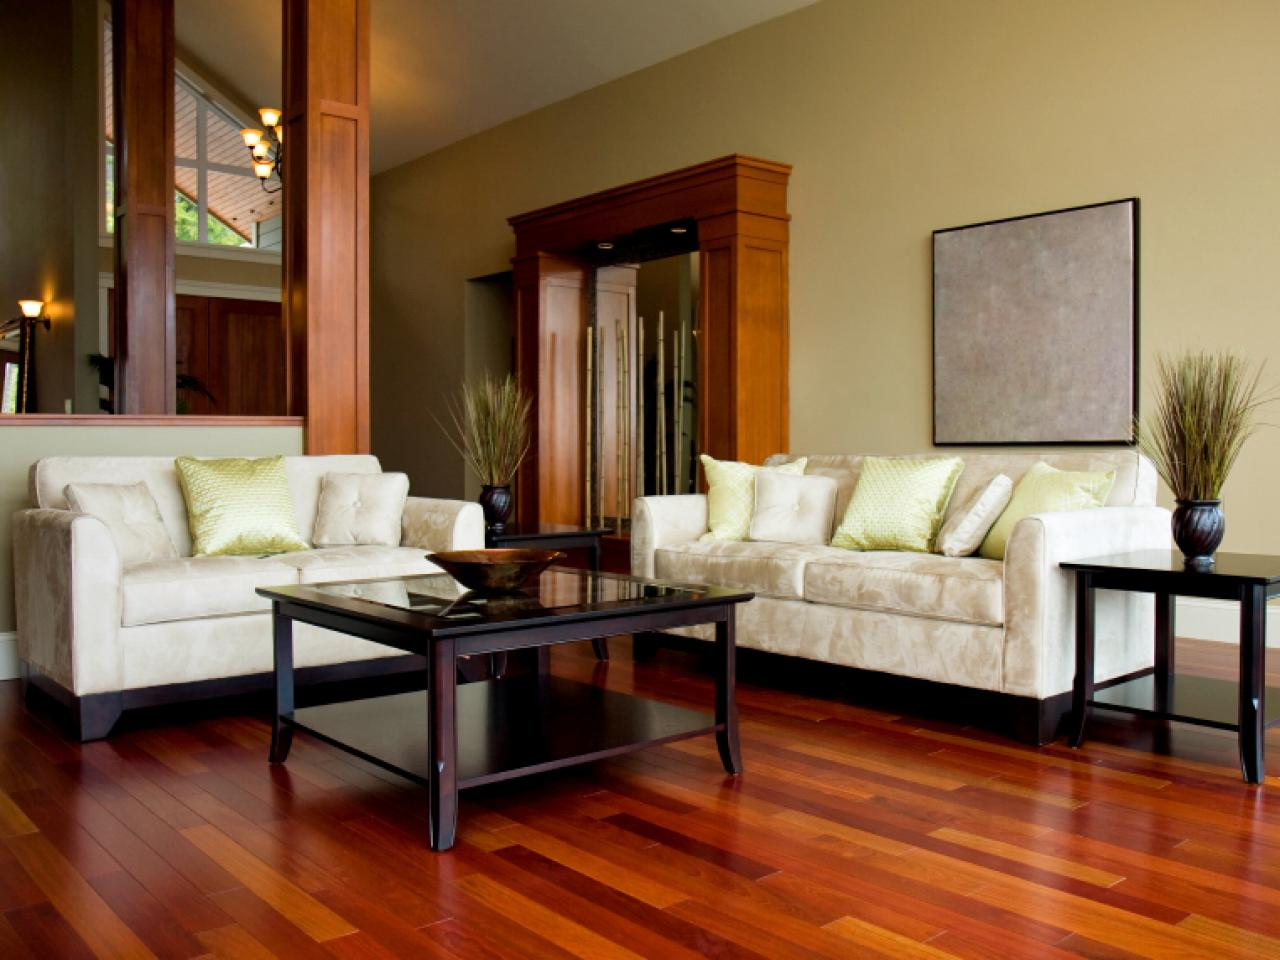 Guide to selecting flooring diy for Carpet living room ideas painting